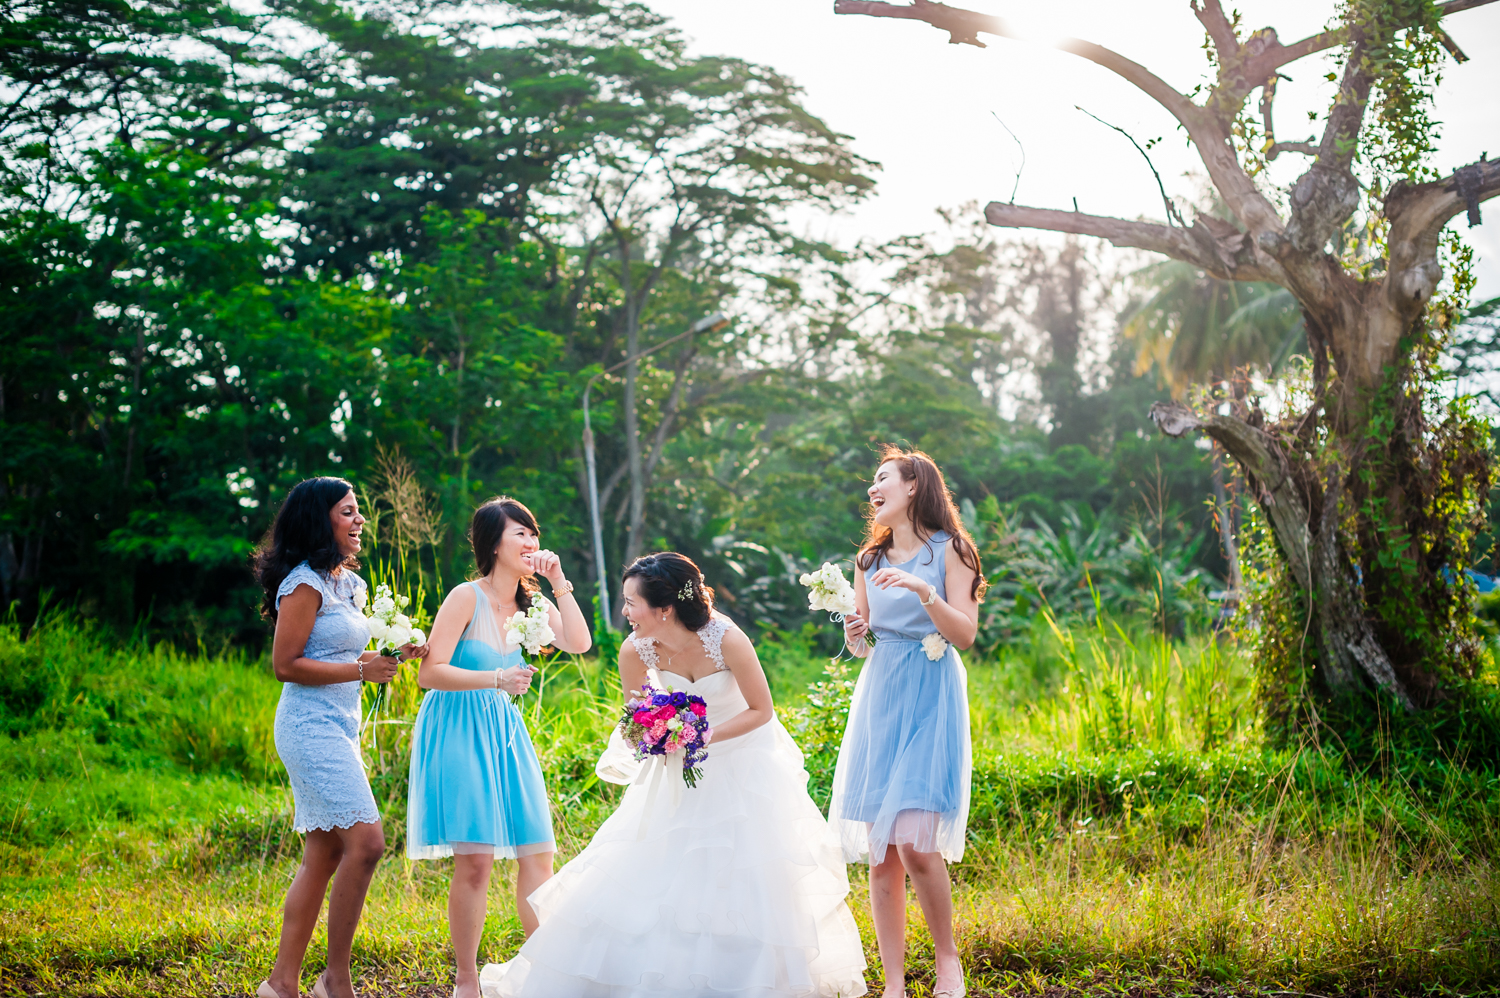 wedding-photoshoot-commonwealth-nature-singapore (5 of 7).jpg